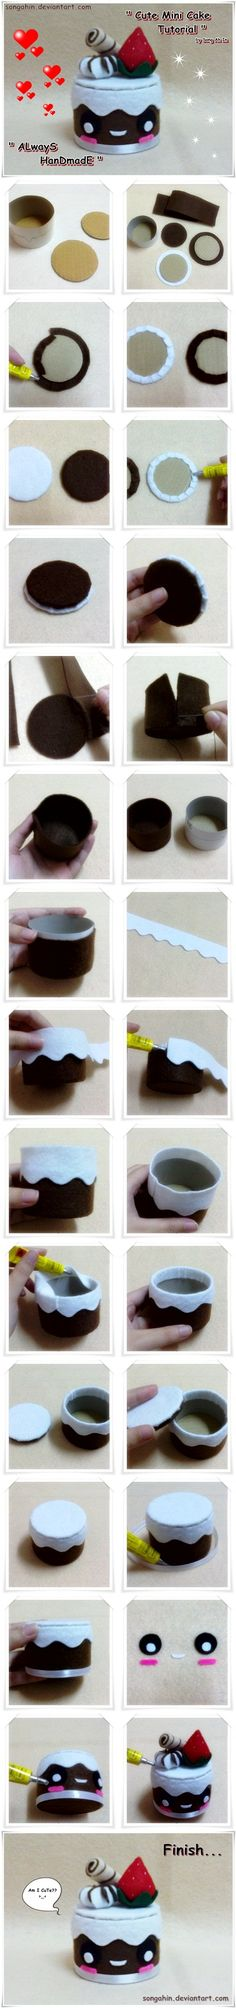 My Cute Mini Cake Box Tutorial by ~SongAhIn on deviantART